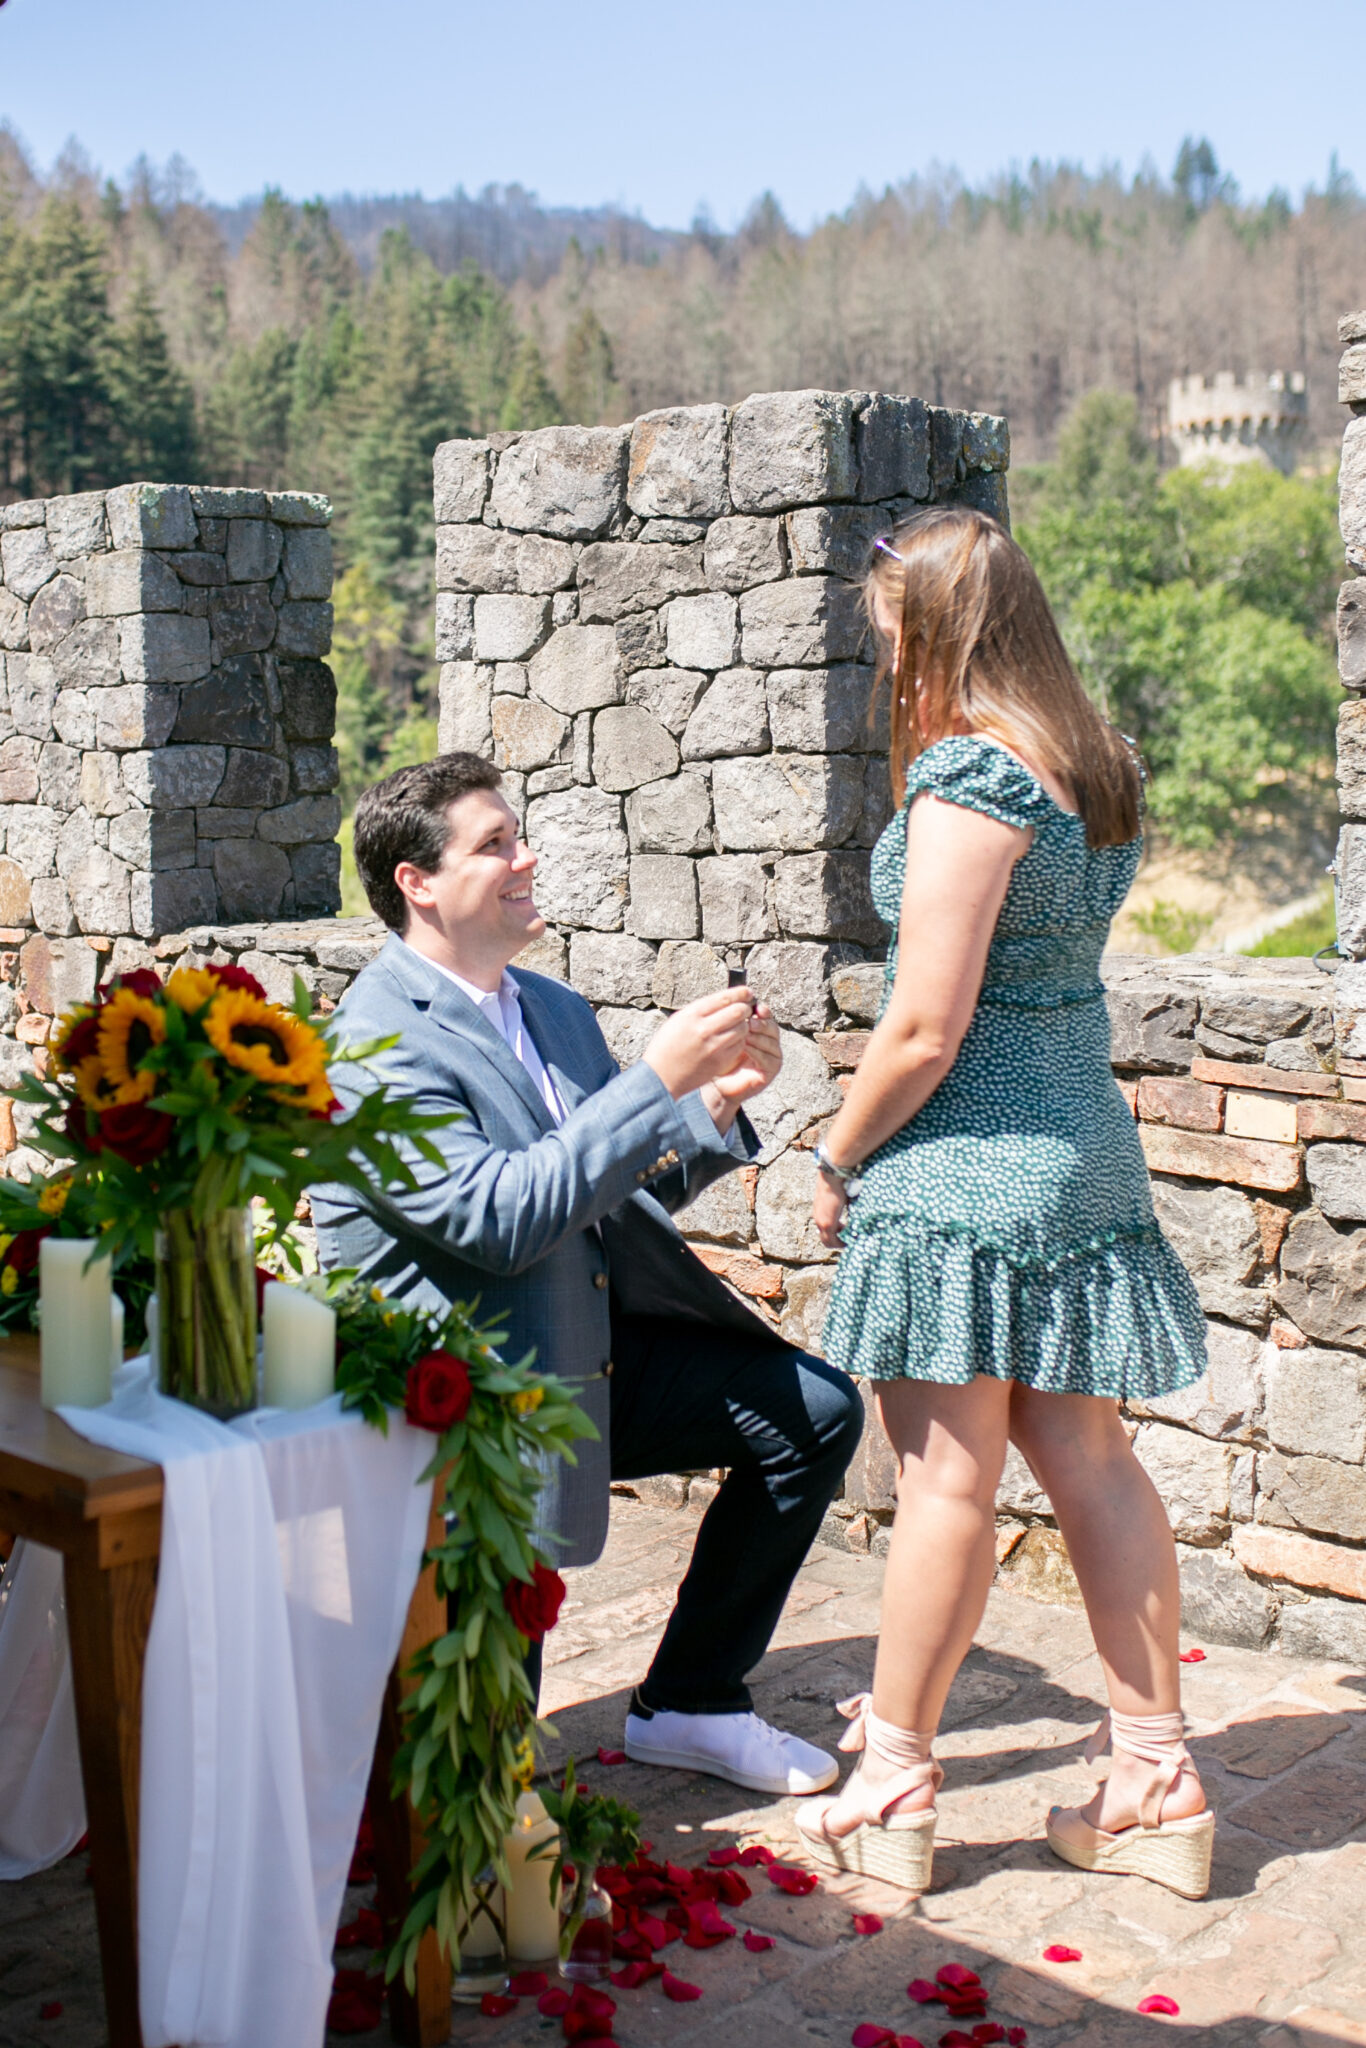 Man down on one knee for marriage proposal in Napa at a castle